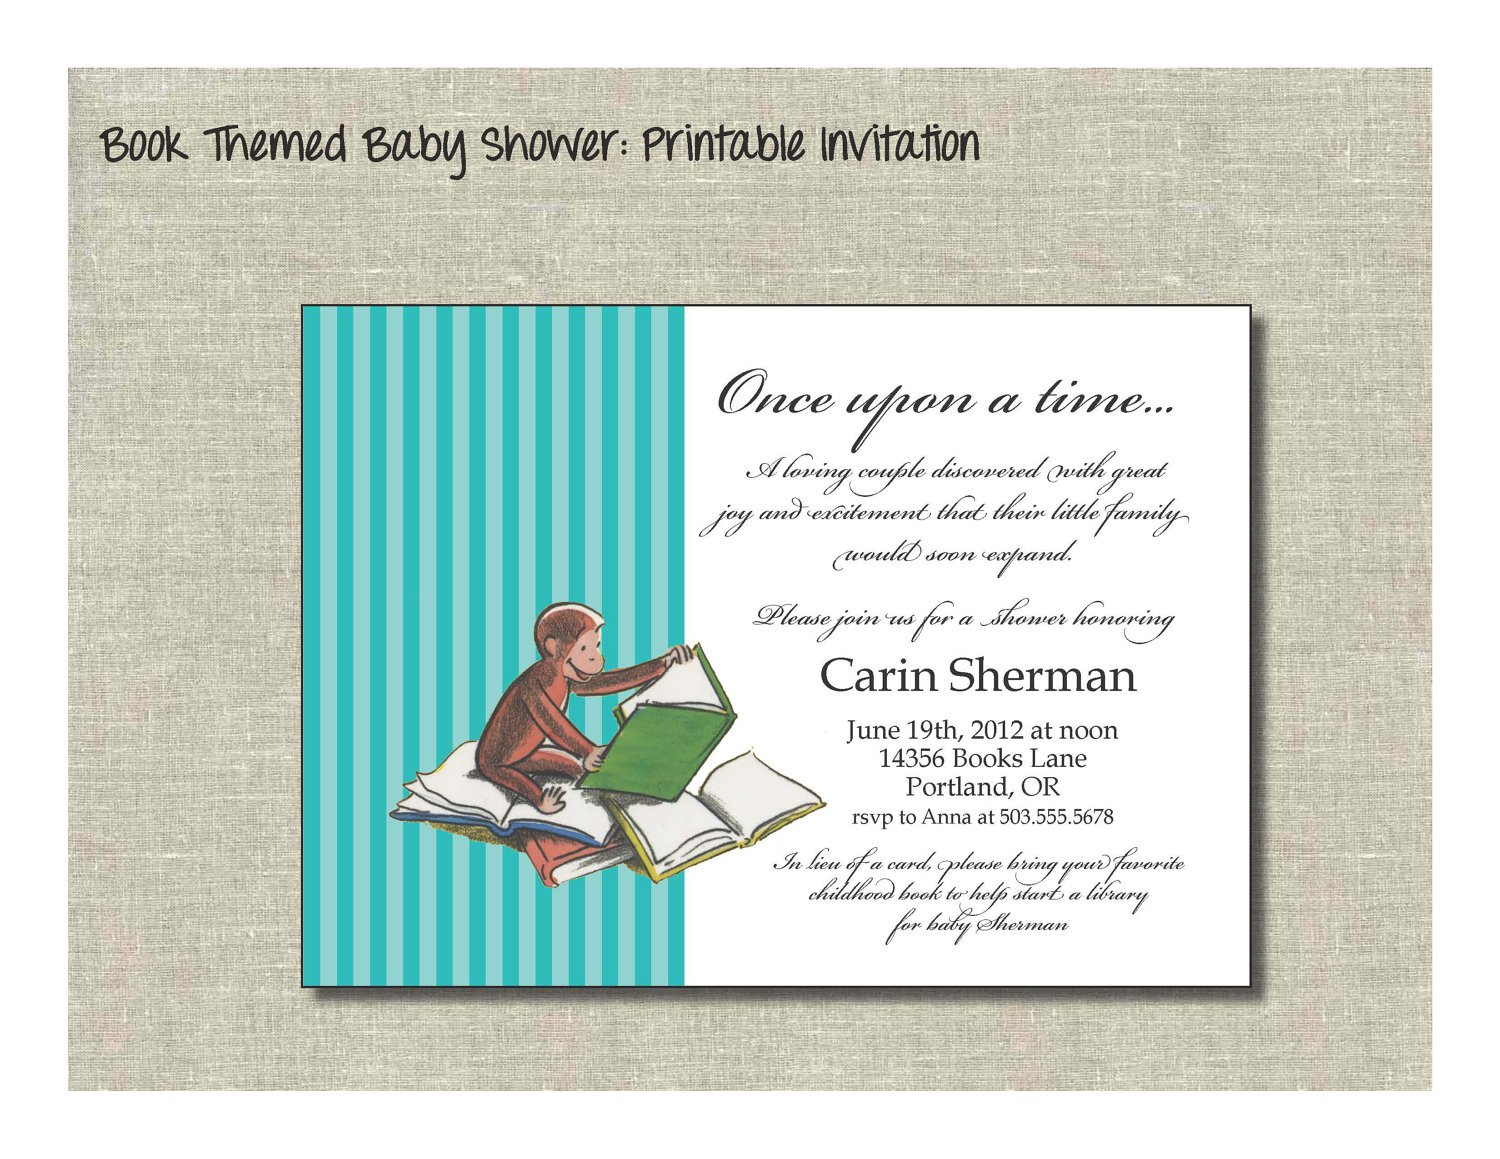 Book Themed Baby Shower Invitation Wording